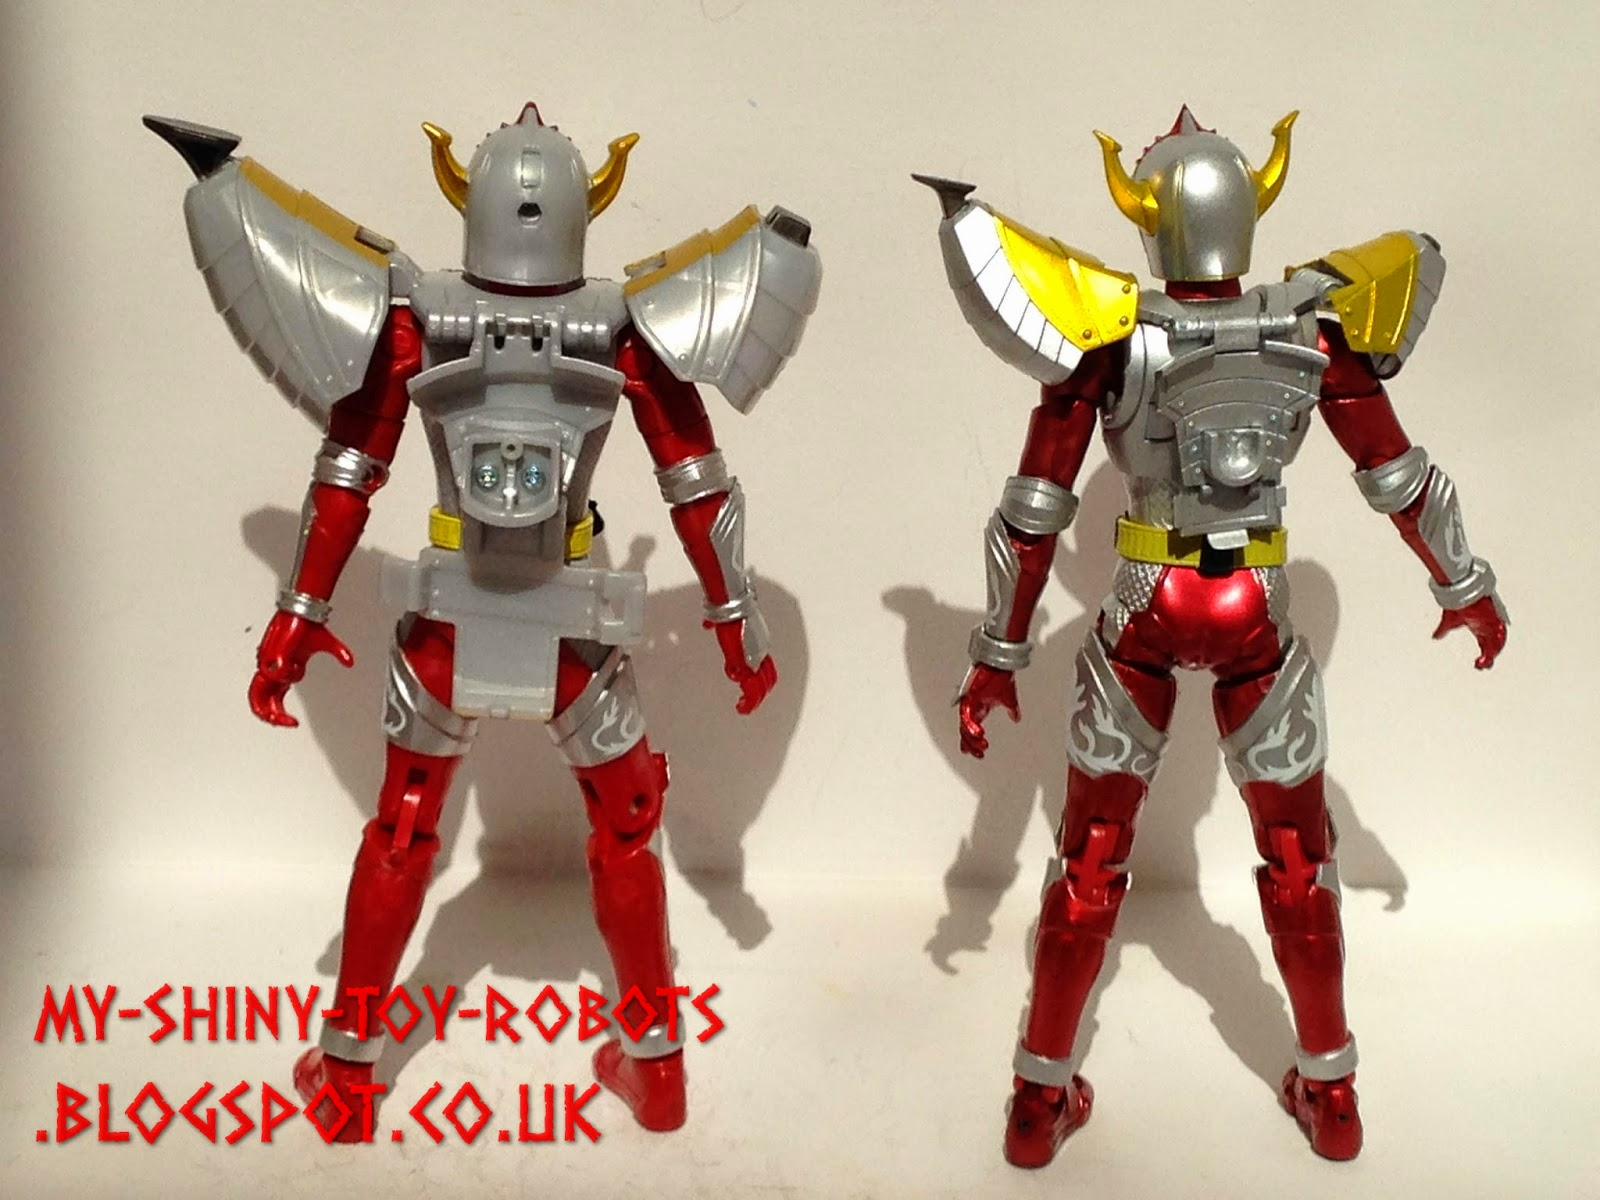 Arms Change/Figuart Comparison 02